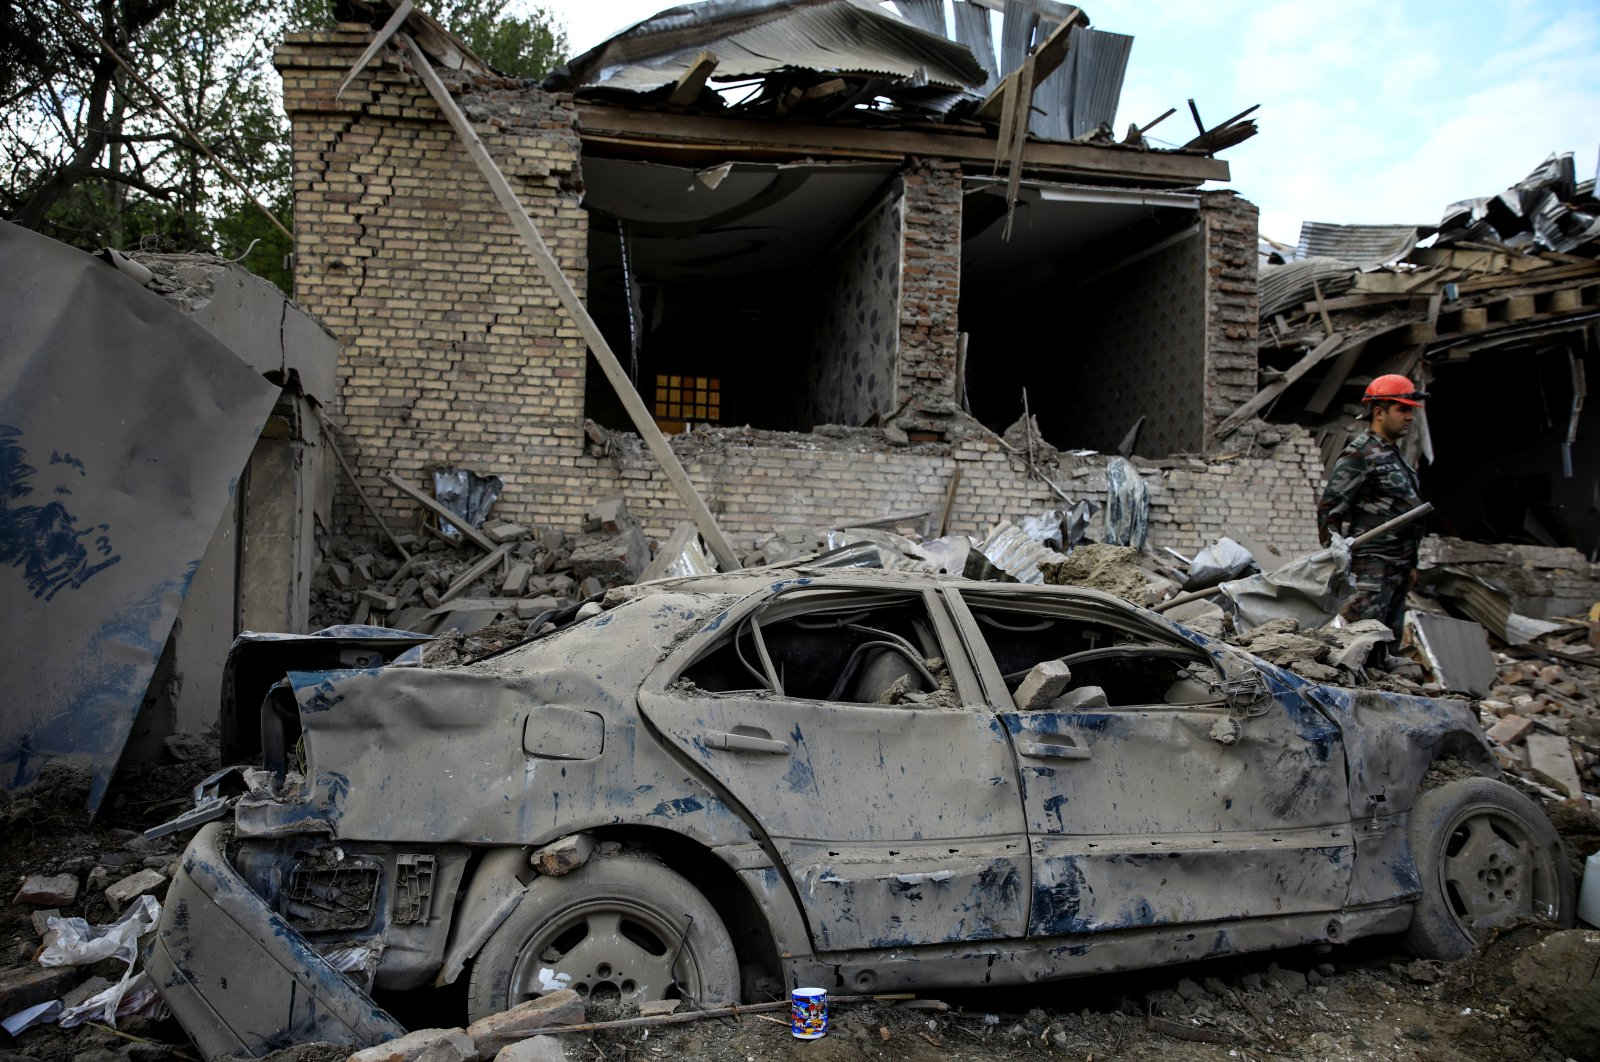 A damaged car is seen at the blast site hit by a rocket during the fighting over the breakaway region of Nagorno-Karabakh, in the city of Ganja, Azerbaijan, Oct. 11, 2020. (REUTERS)